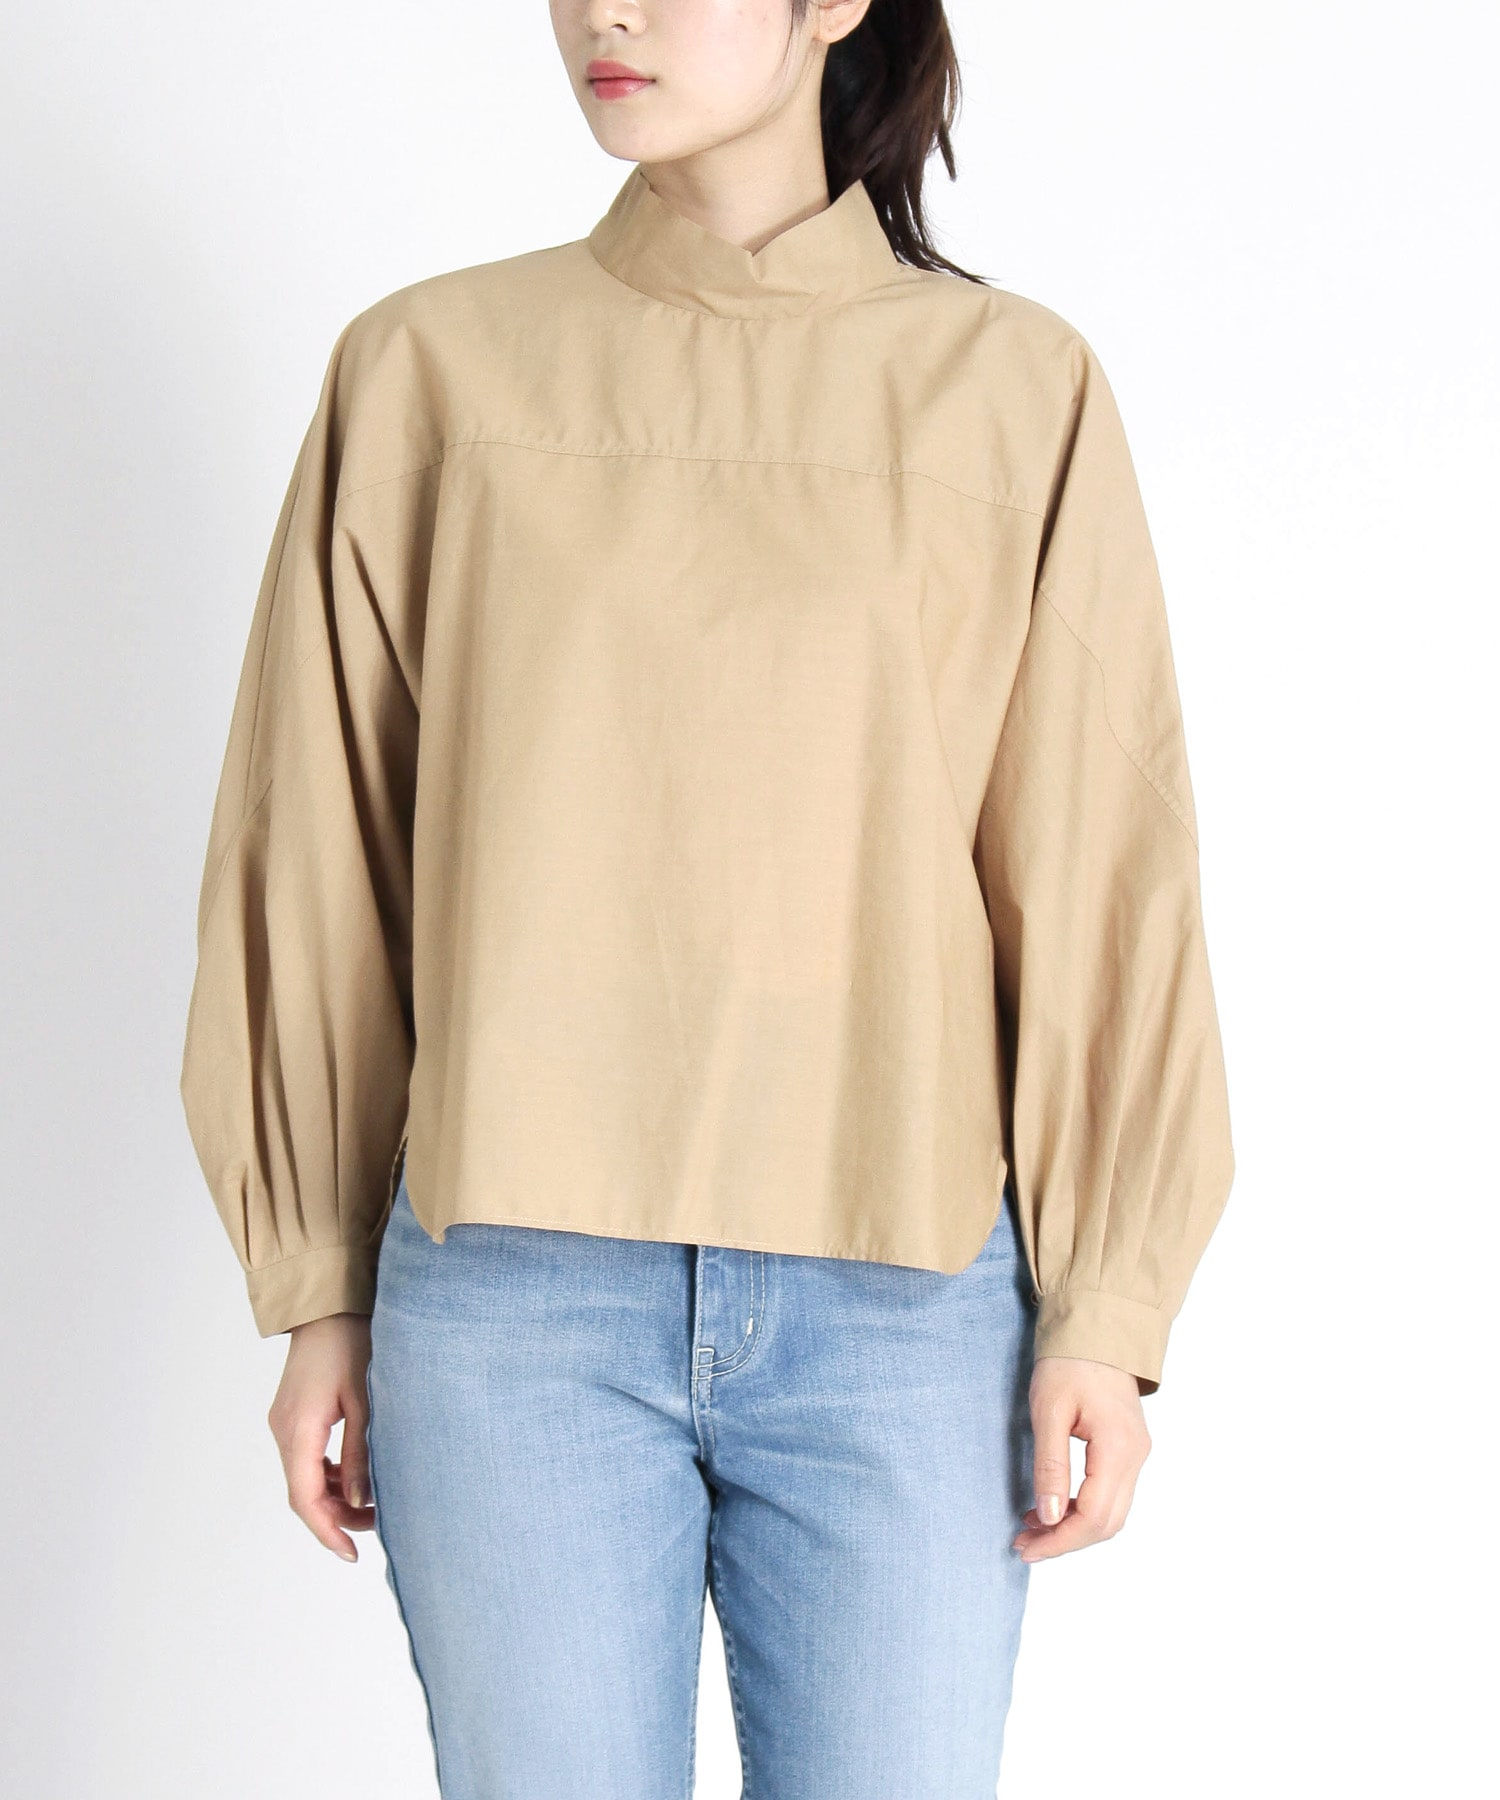 stand neck bolume sleeve blouse